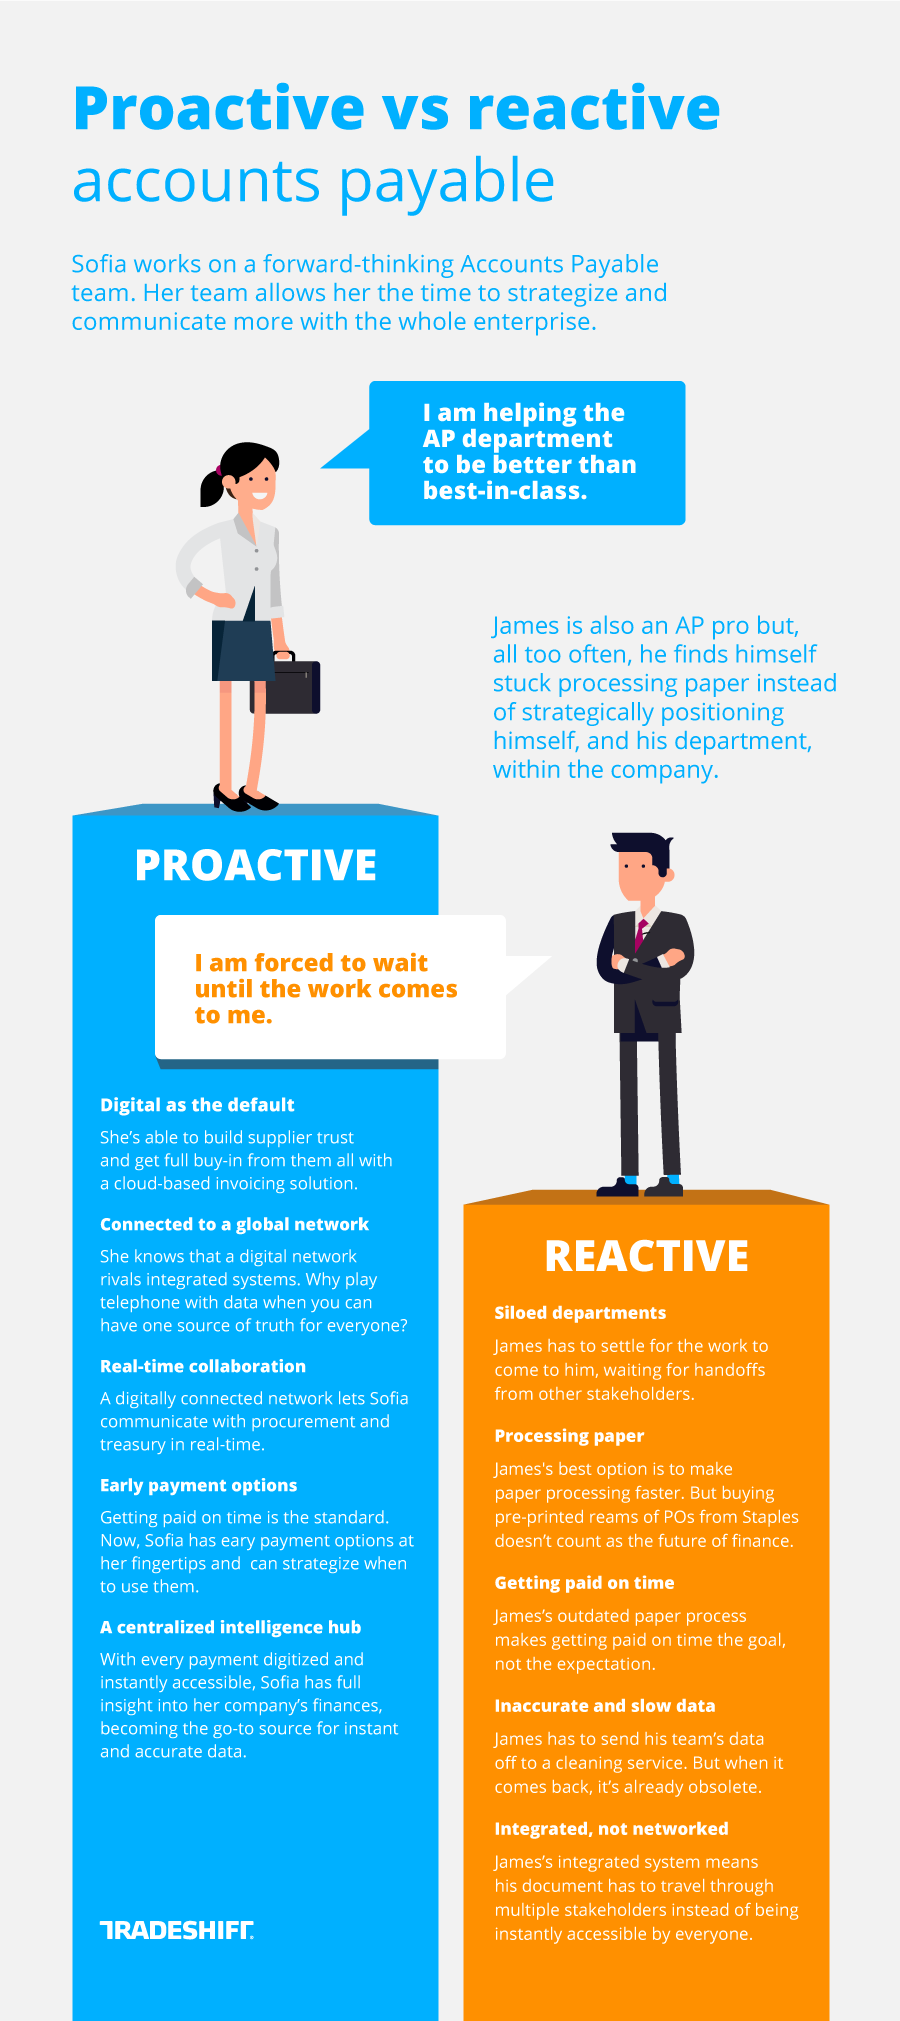 infographic--proactivevreactive.png